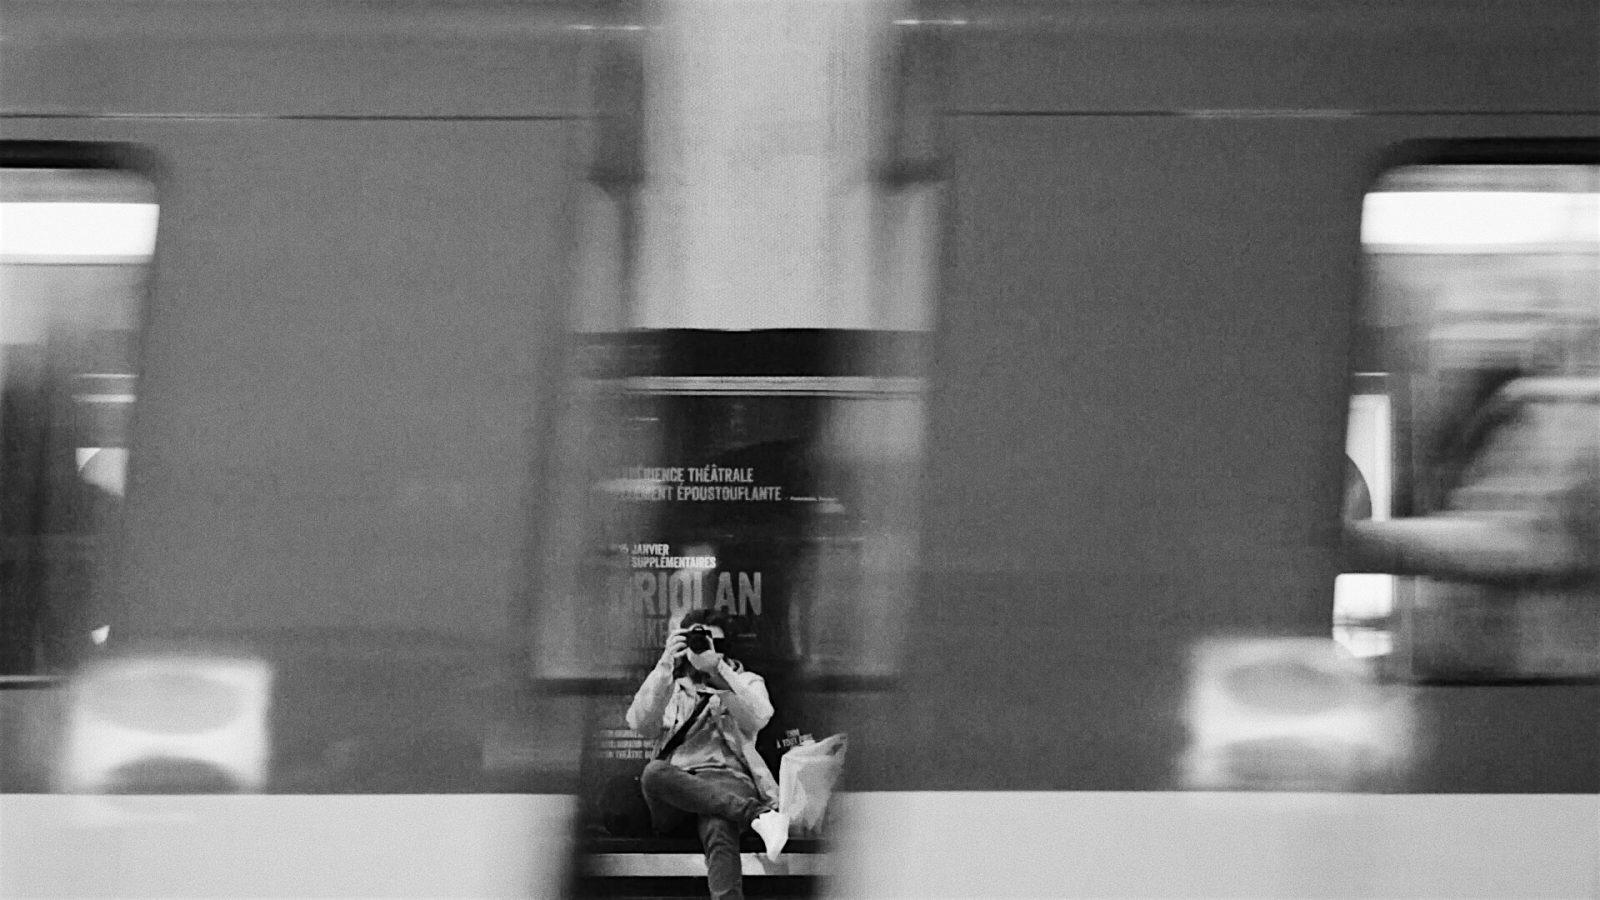 Student taking a photo in a subway station